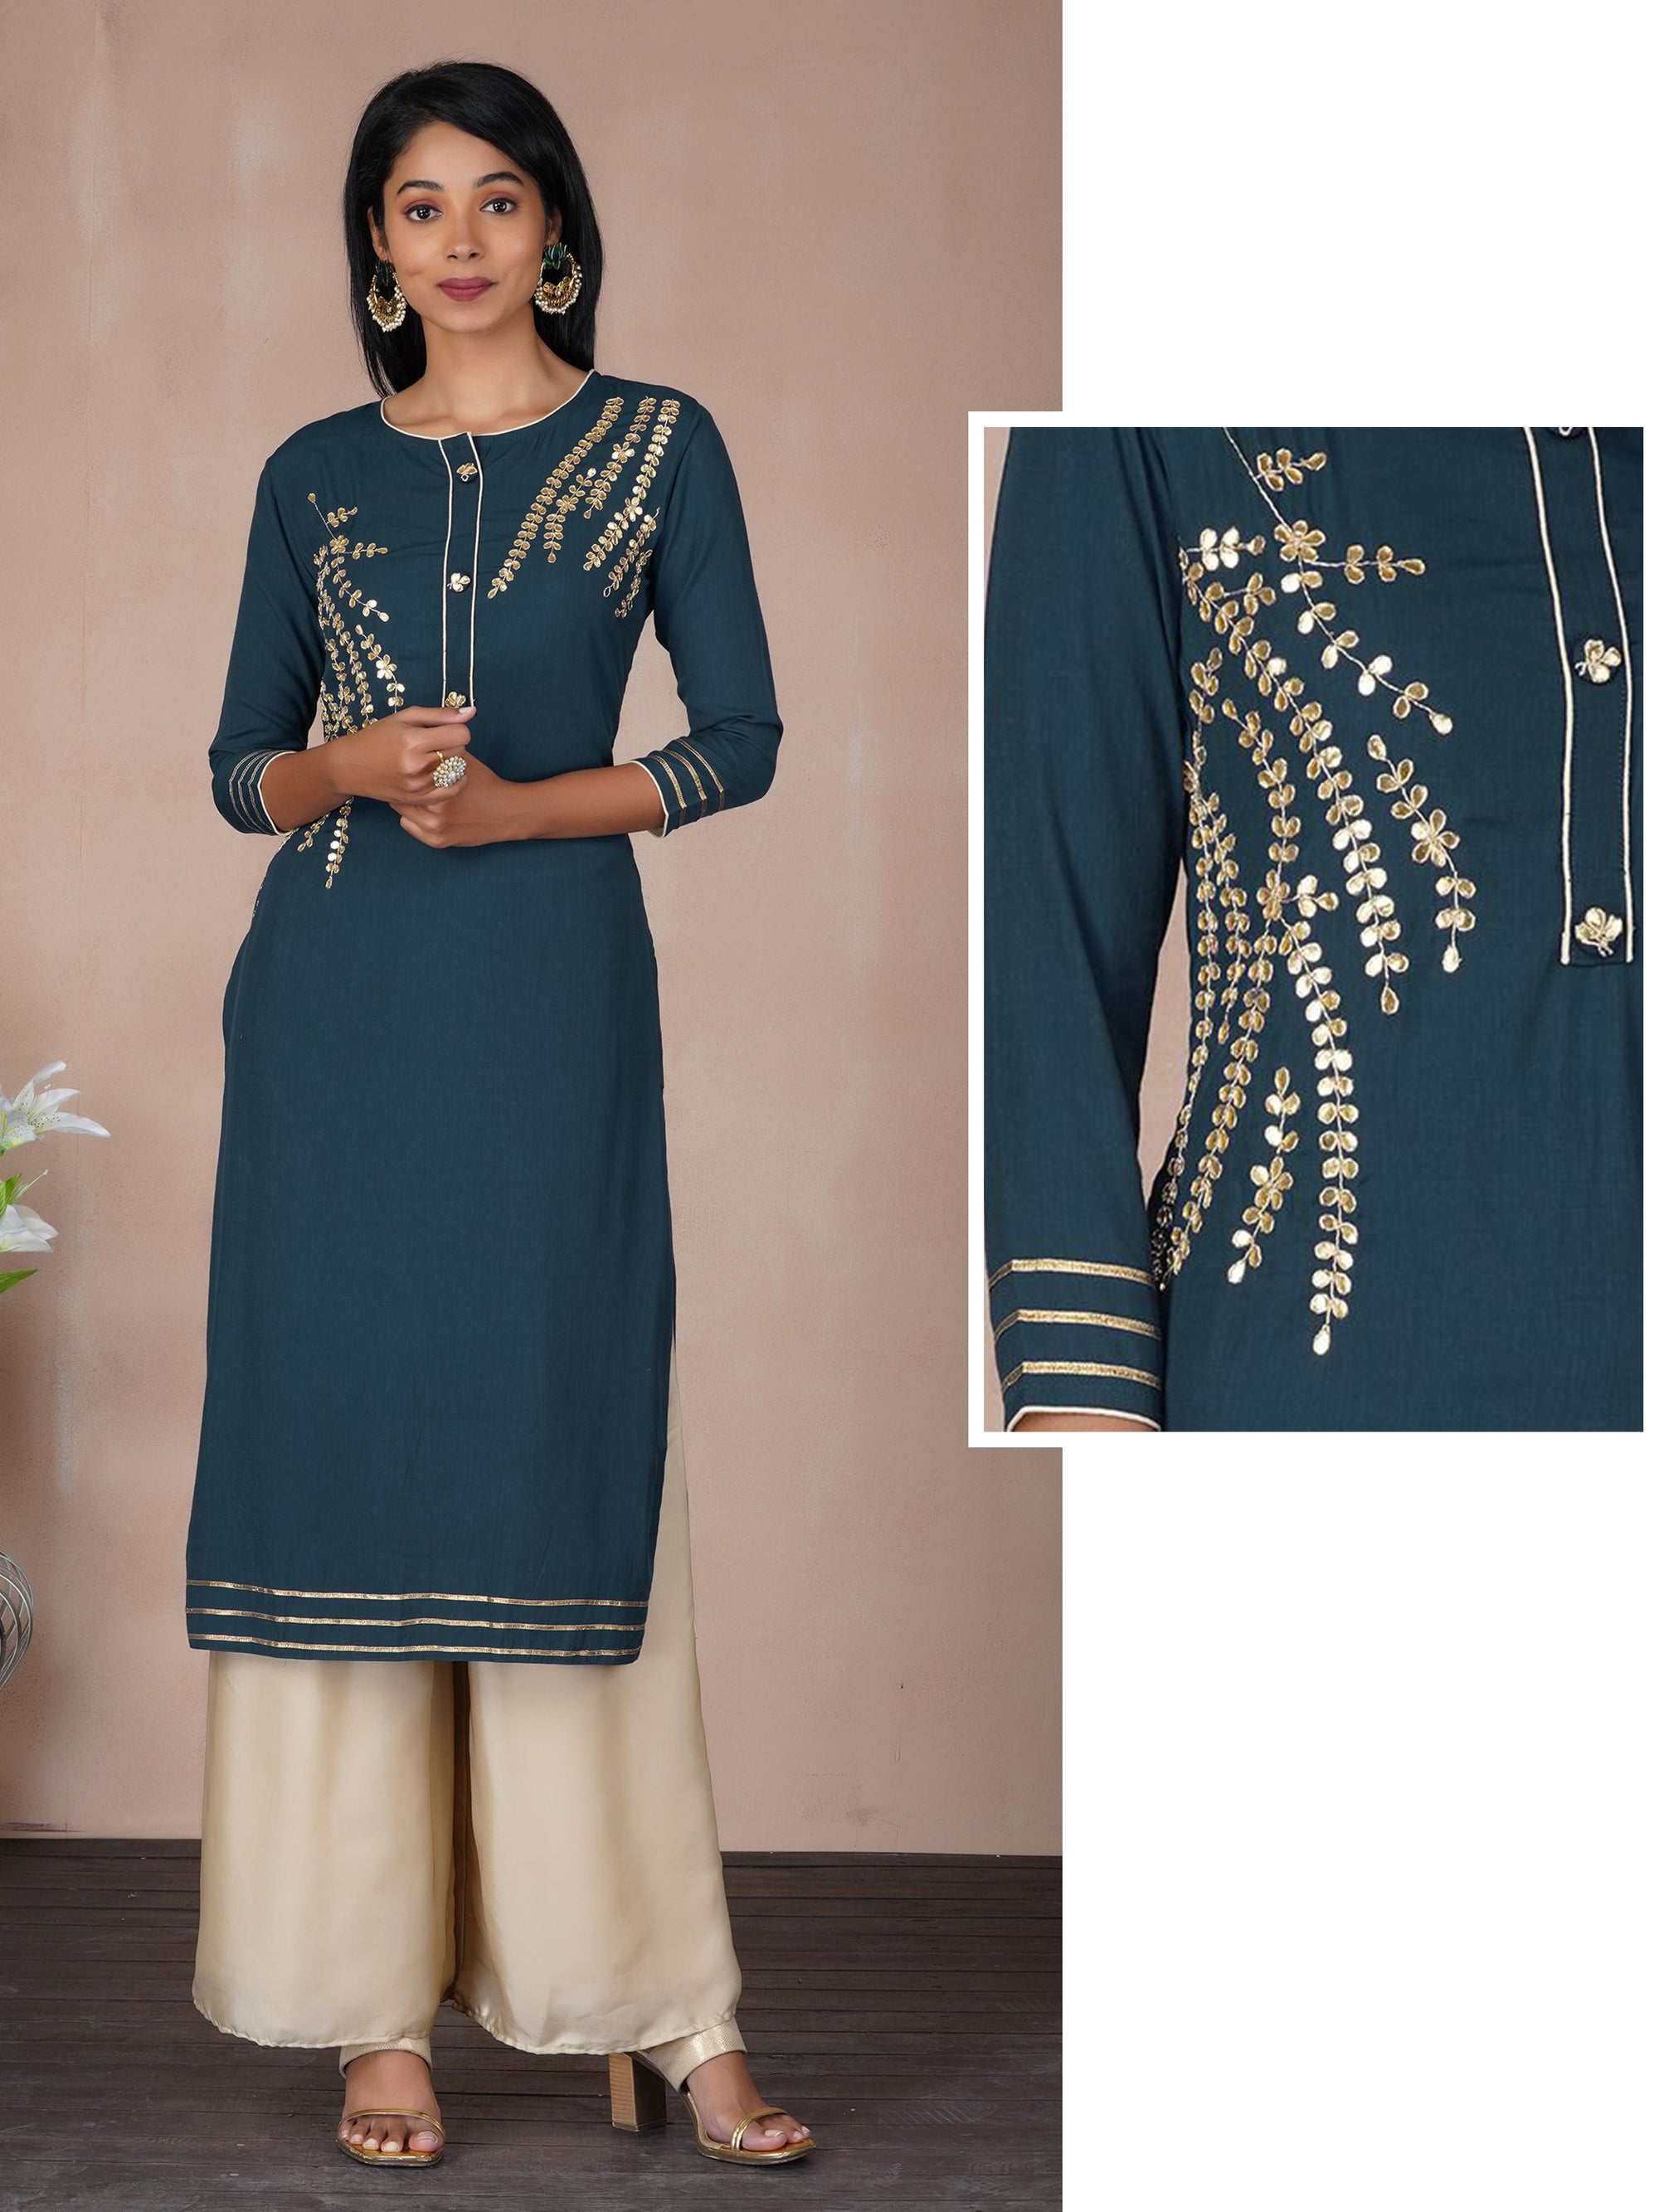 Gota Work Kurta With Gota Detailing Buttons on Placket